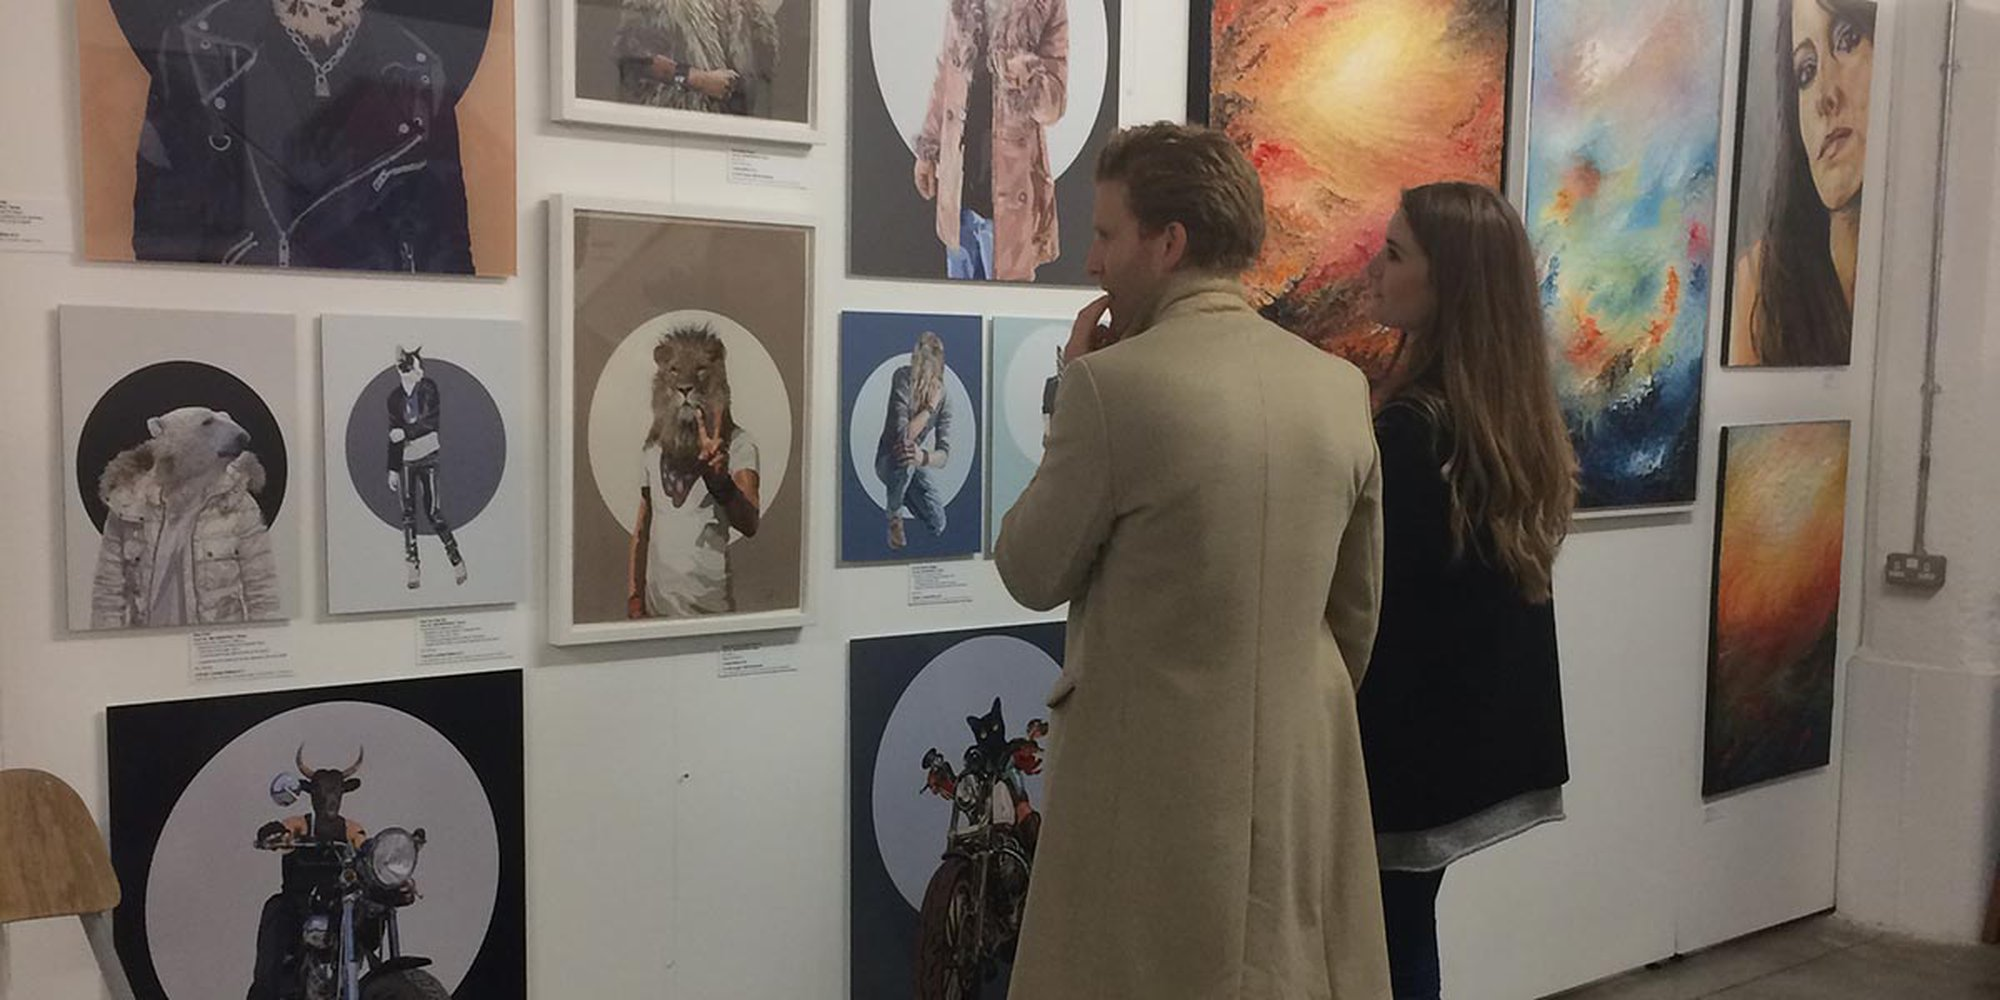 Metamorphica & the Danse Macabre prints on display at the Talented Art Fair in 2018